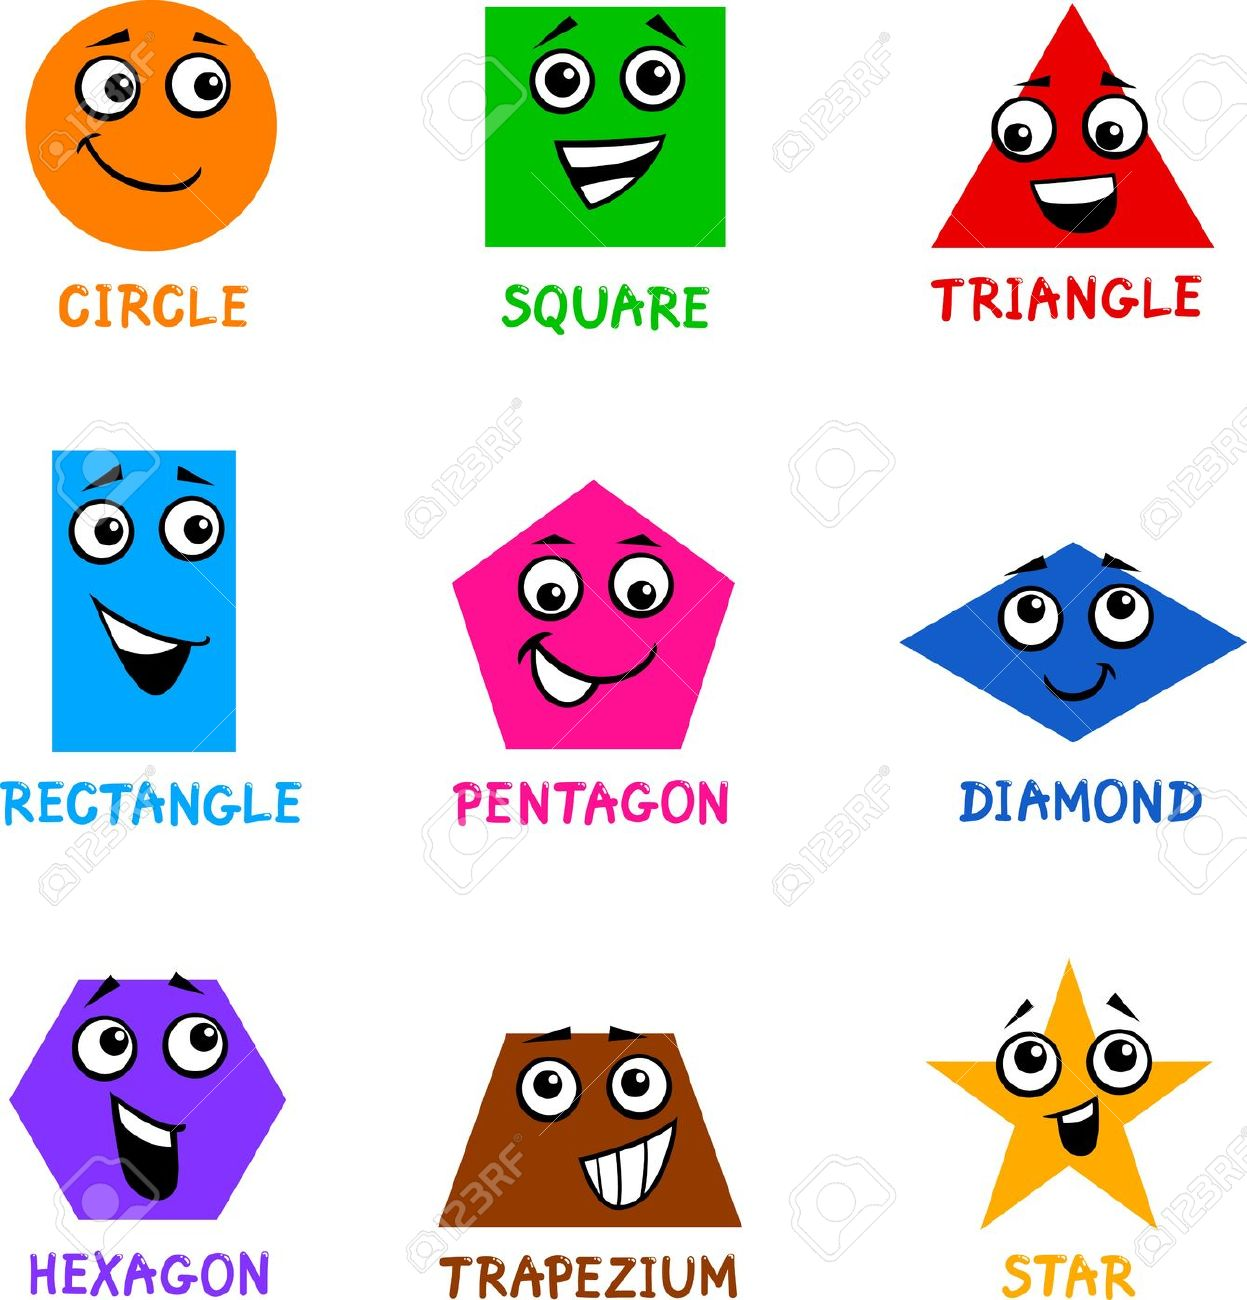 Square clipart cartoon Characters Clipart Characters Cartoon Shapes